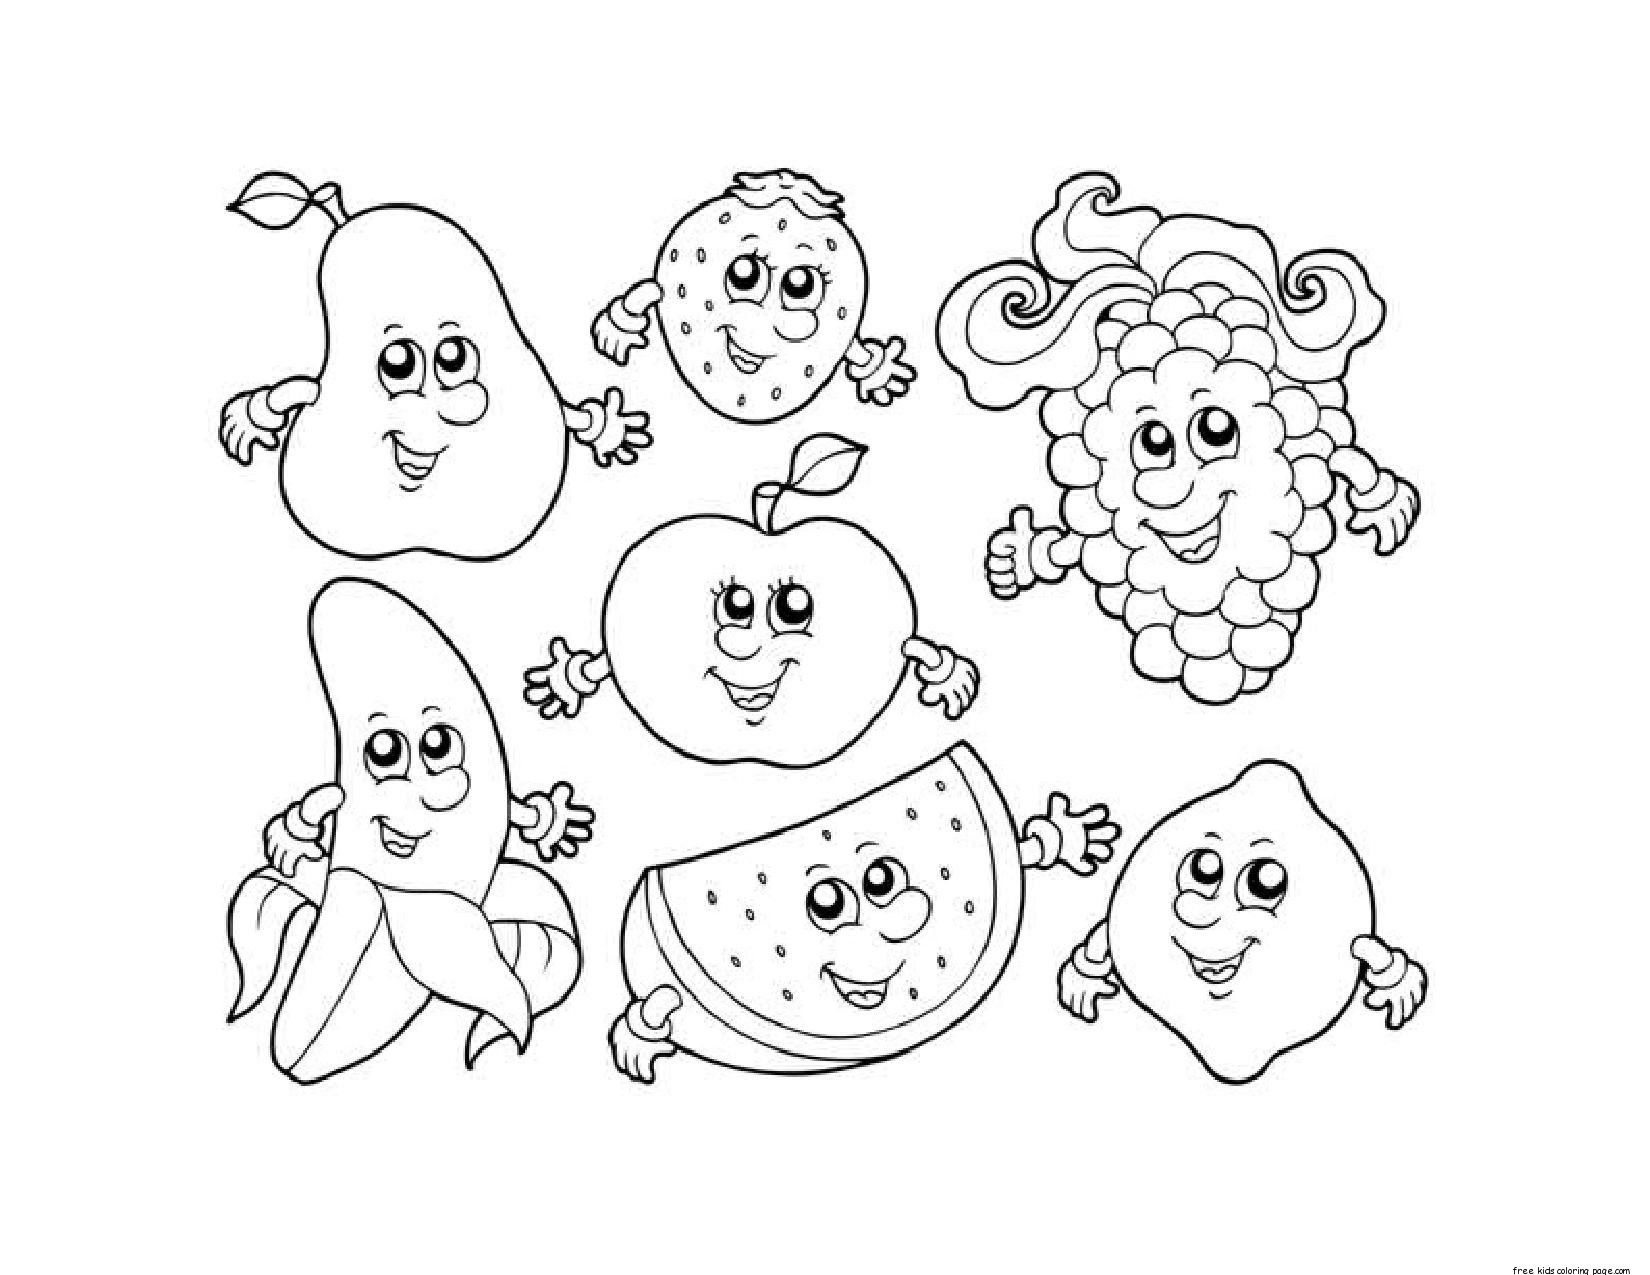 10 Pics of Grapes Fruit Coloring Pages - Grapes Clip Art Coloring ...